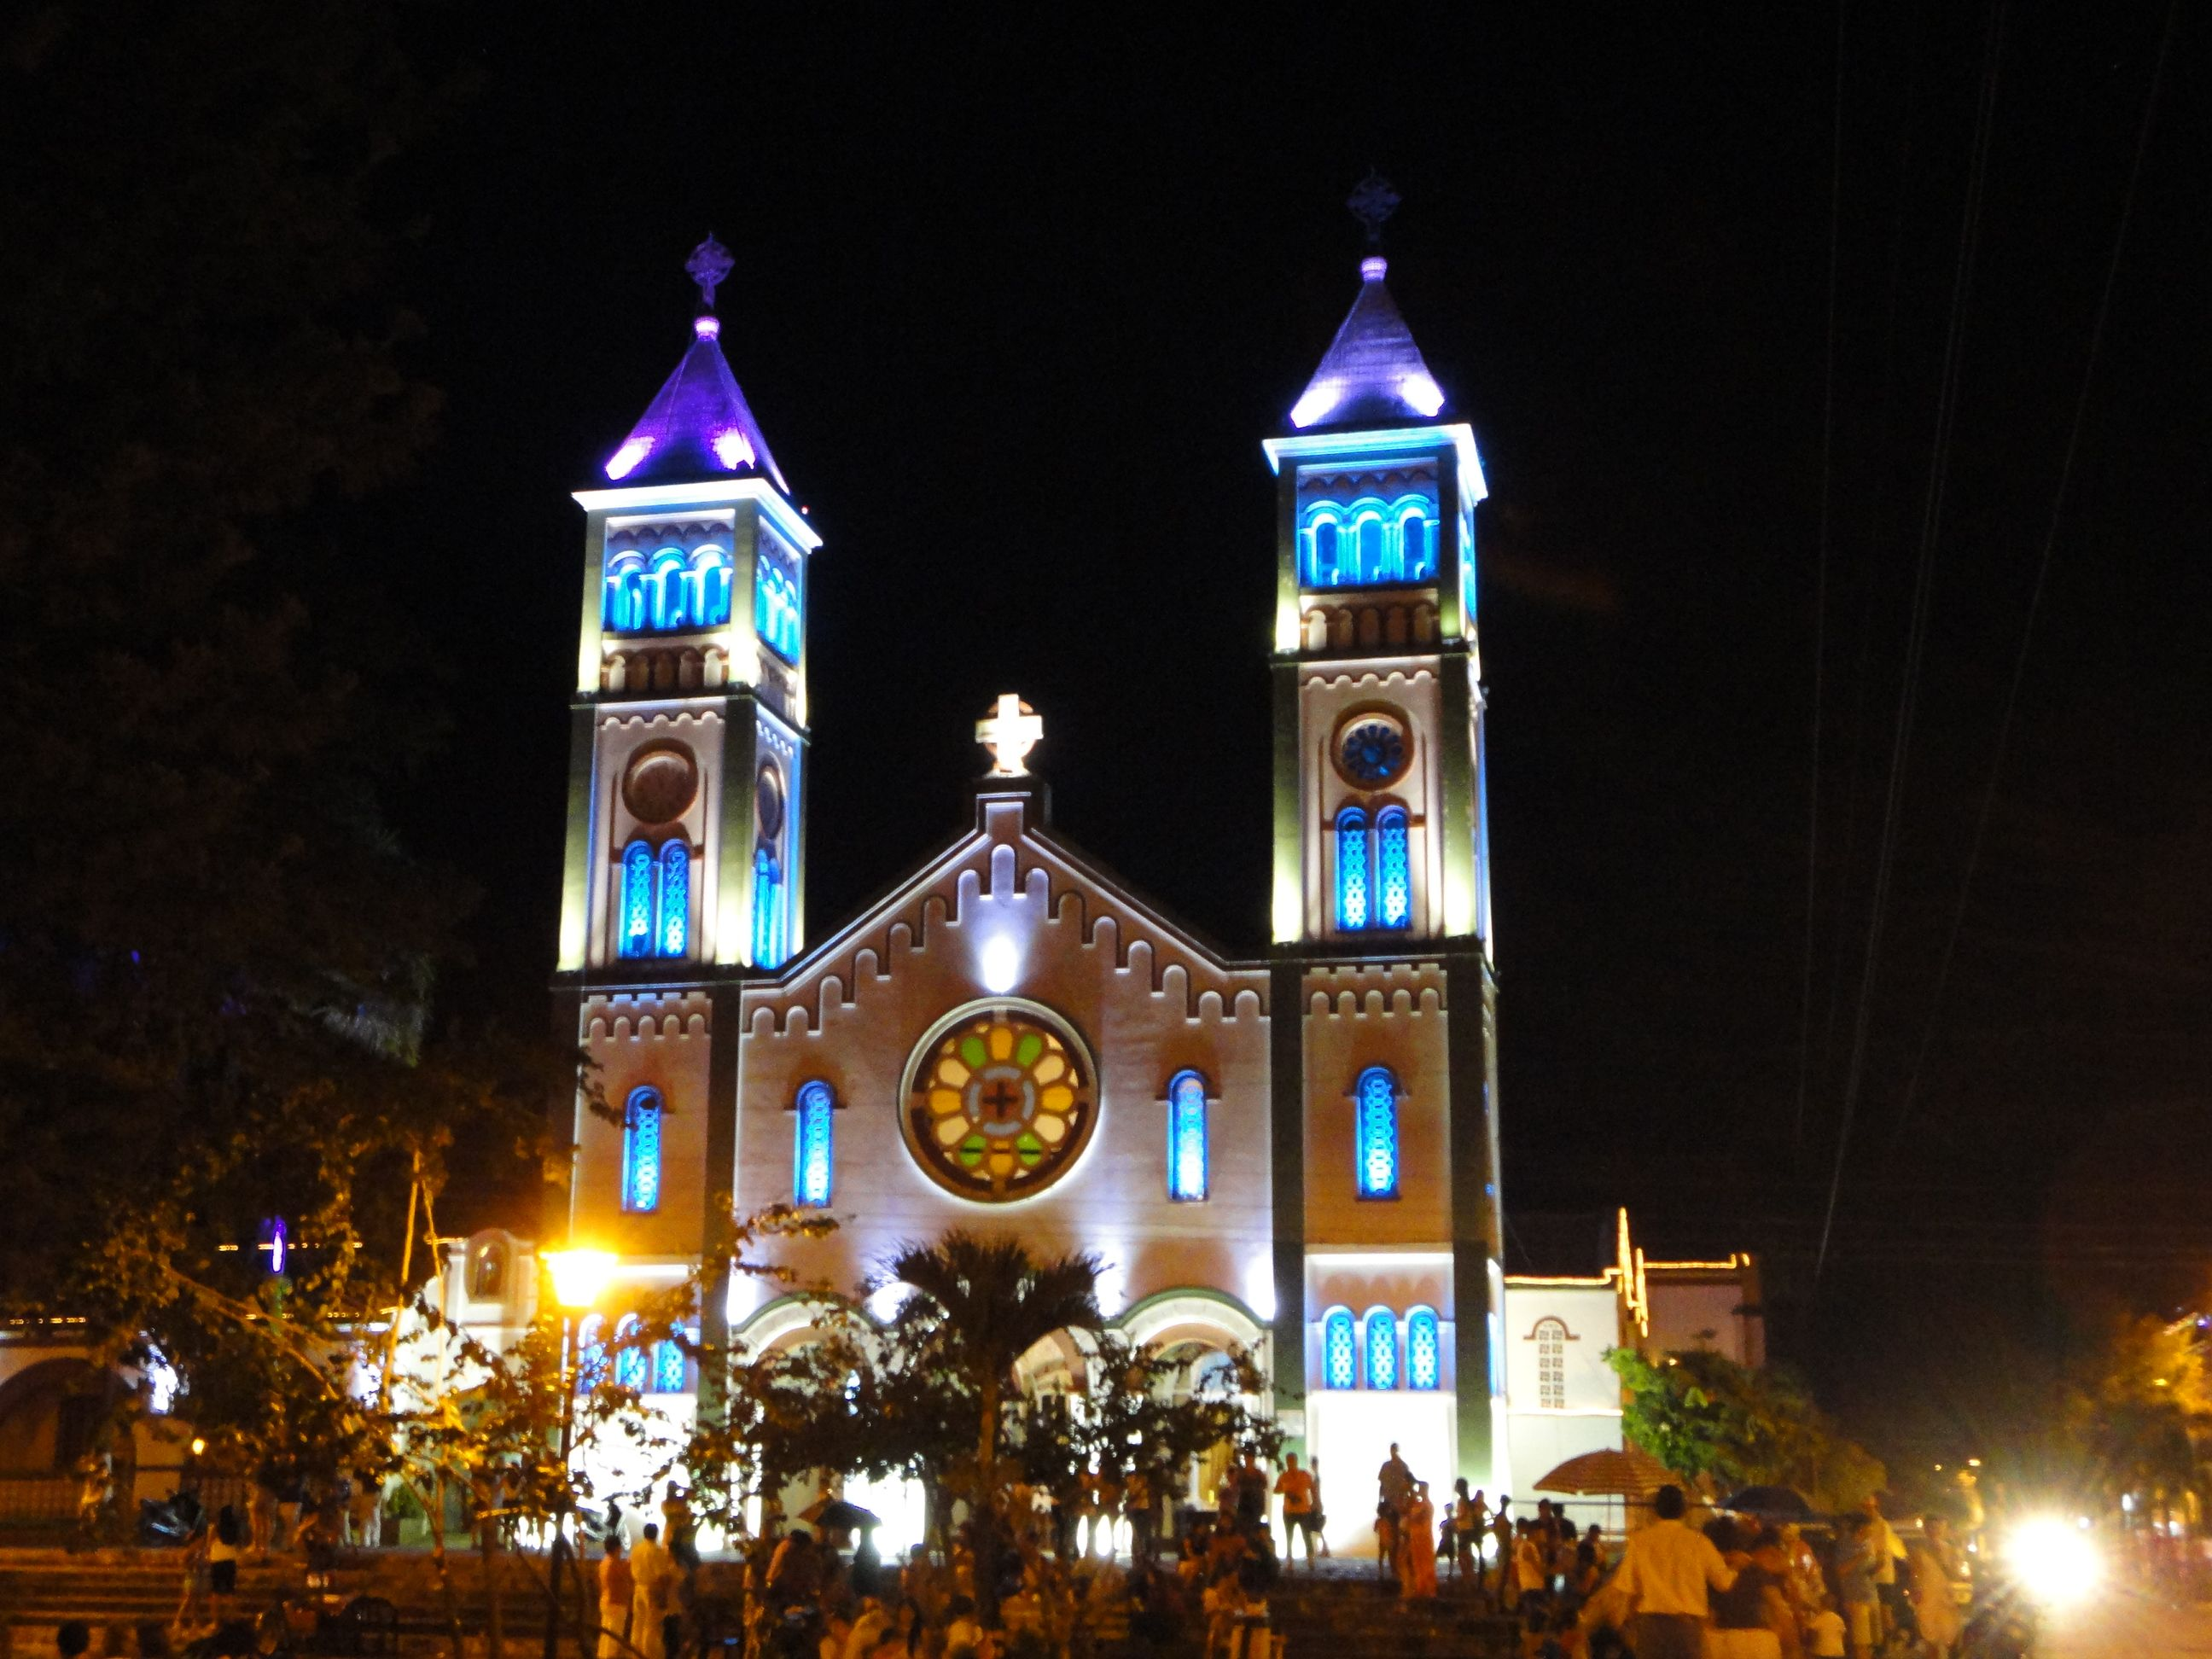 Christmas In Colombia South America.Church In Guamal Colombia Near Christmas Time 3 Du Lịch